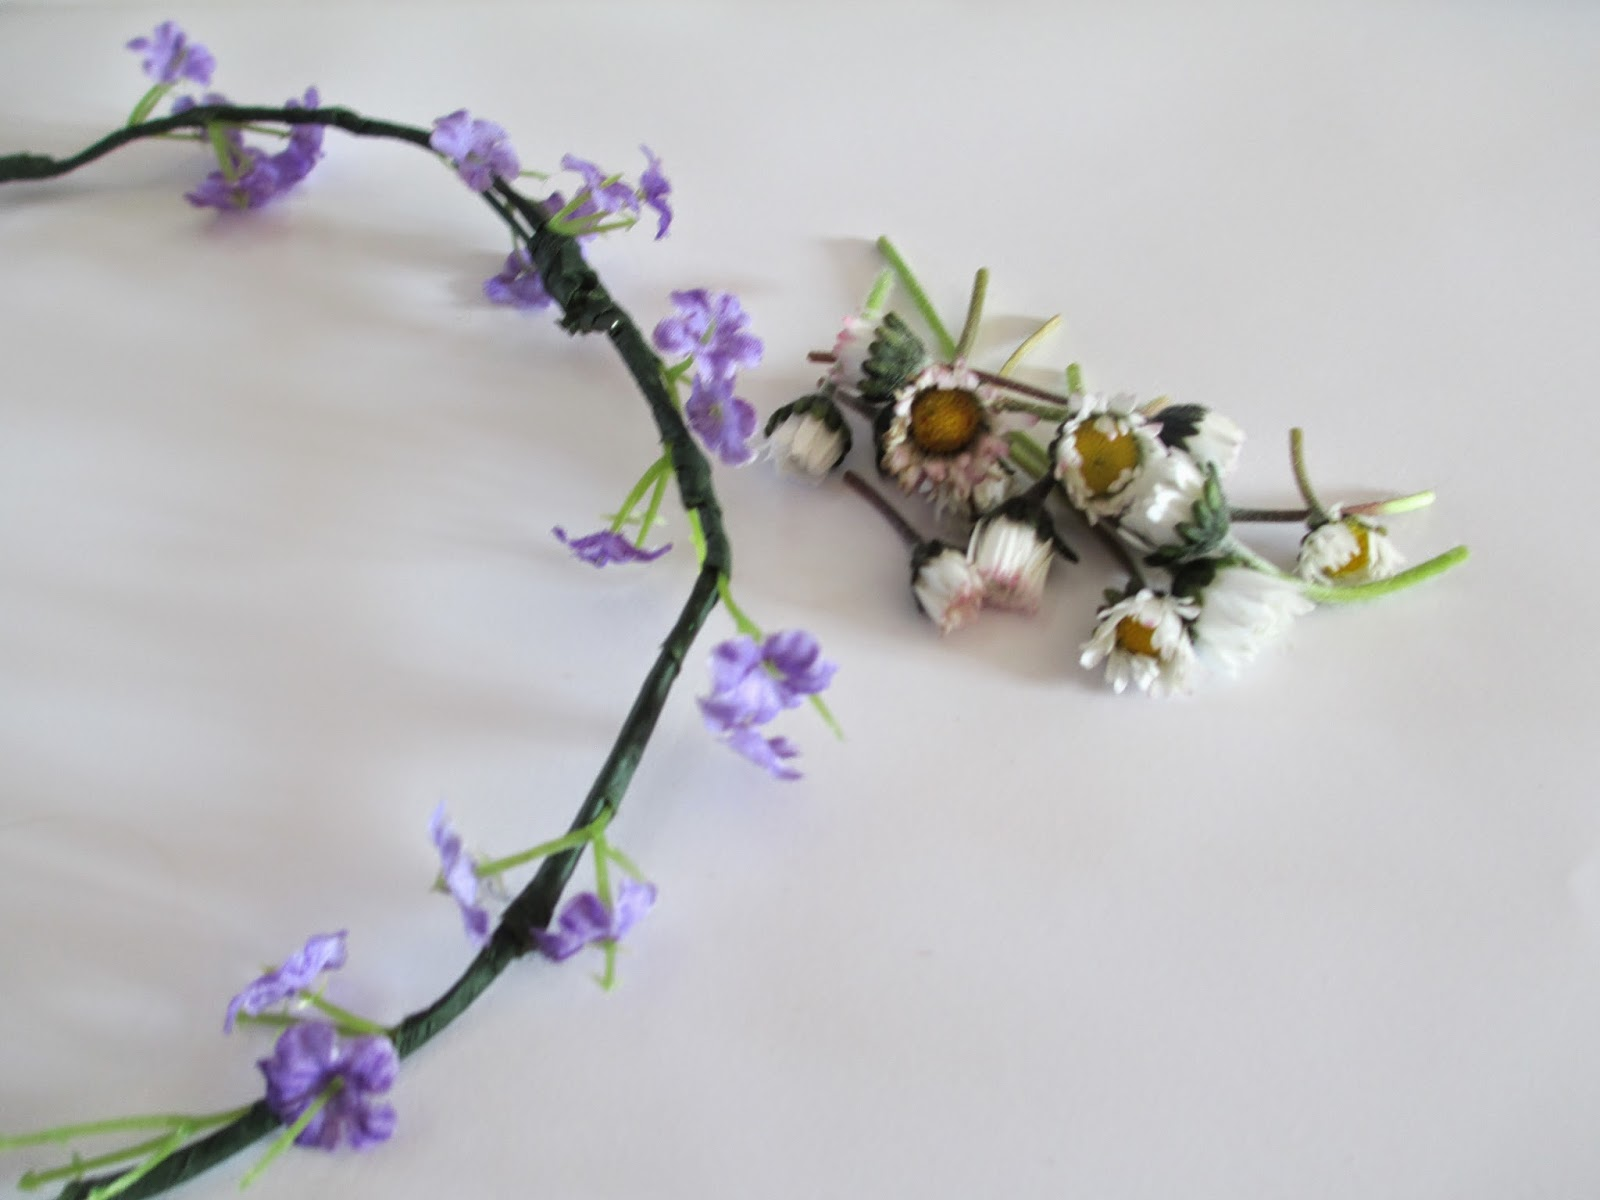 Tins little world diyupcycled flower crown 1 old flower crown flower crown that you want to change daisies or any other small flower thin wireoptional izmirmasajfo